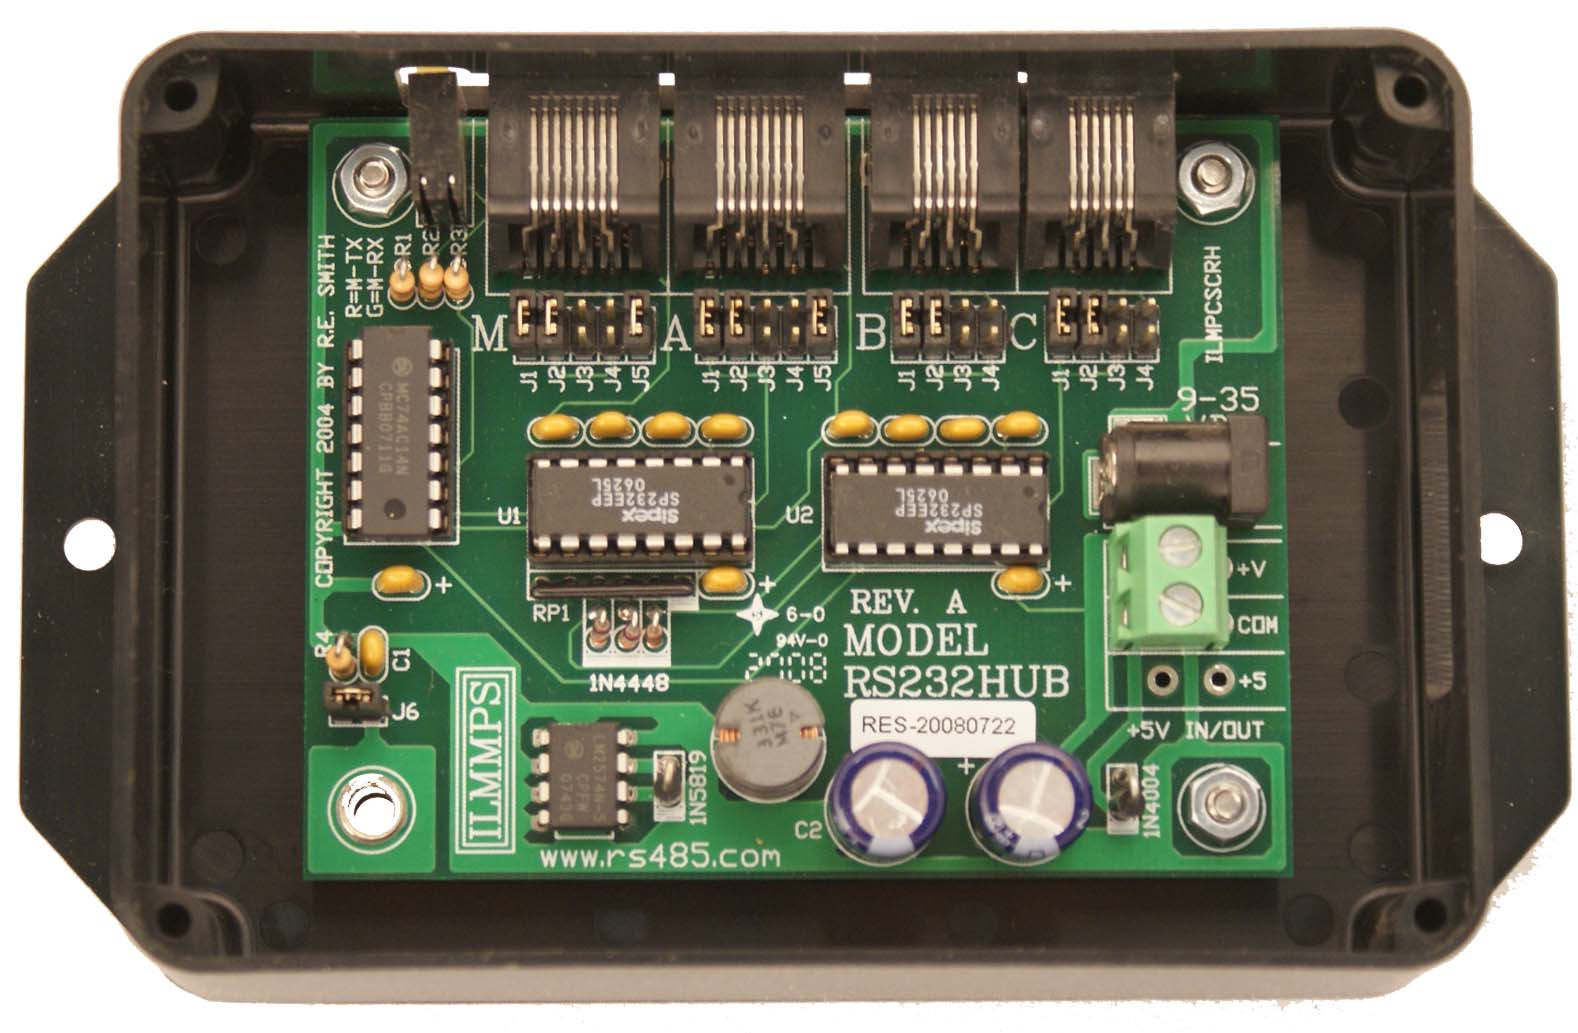 RS232HUB with Box